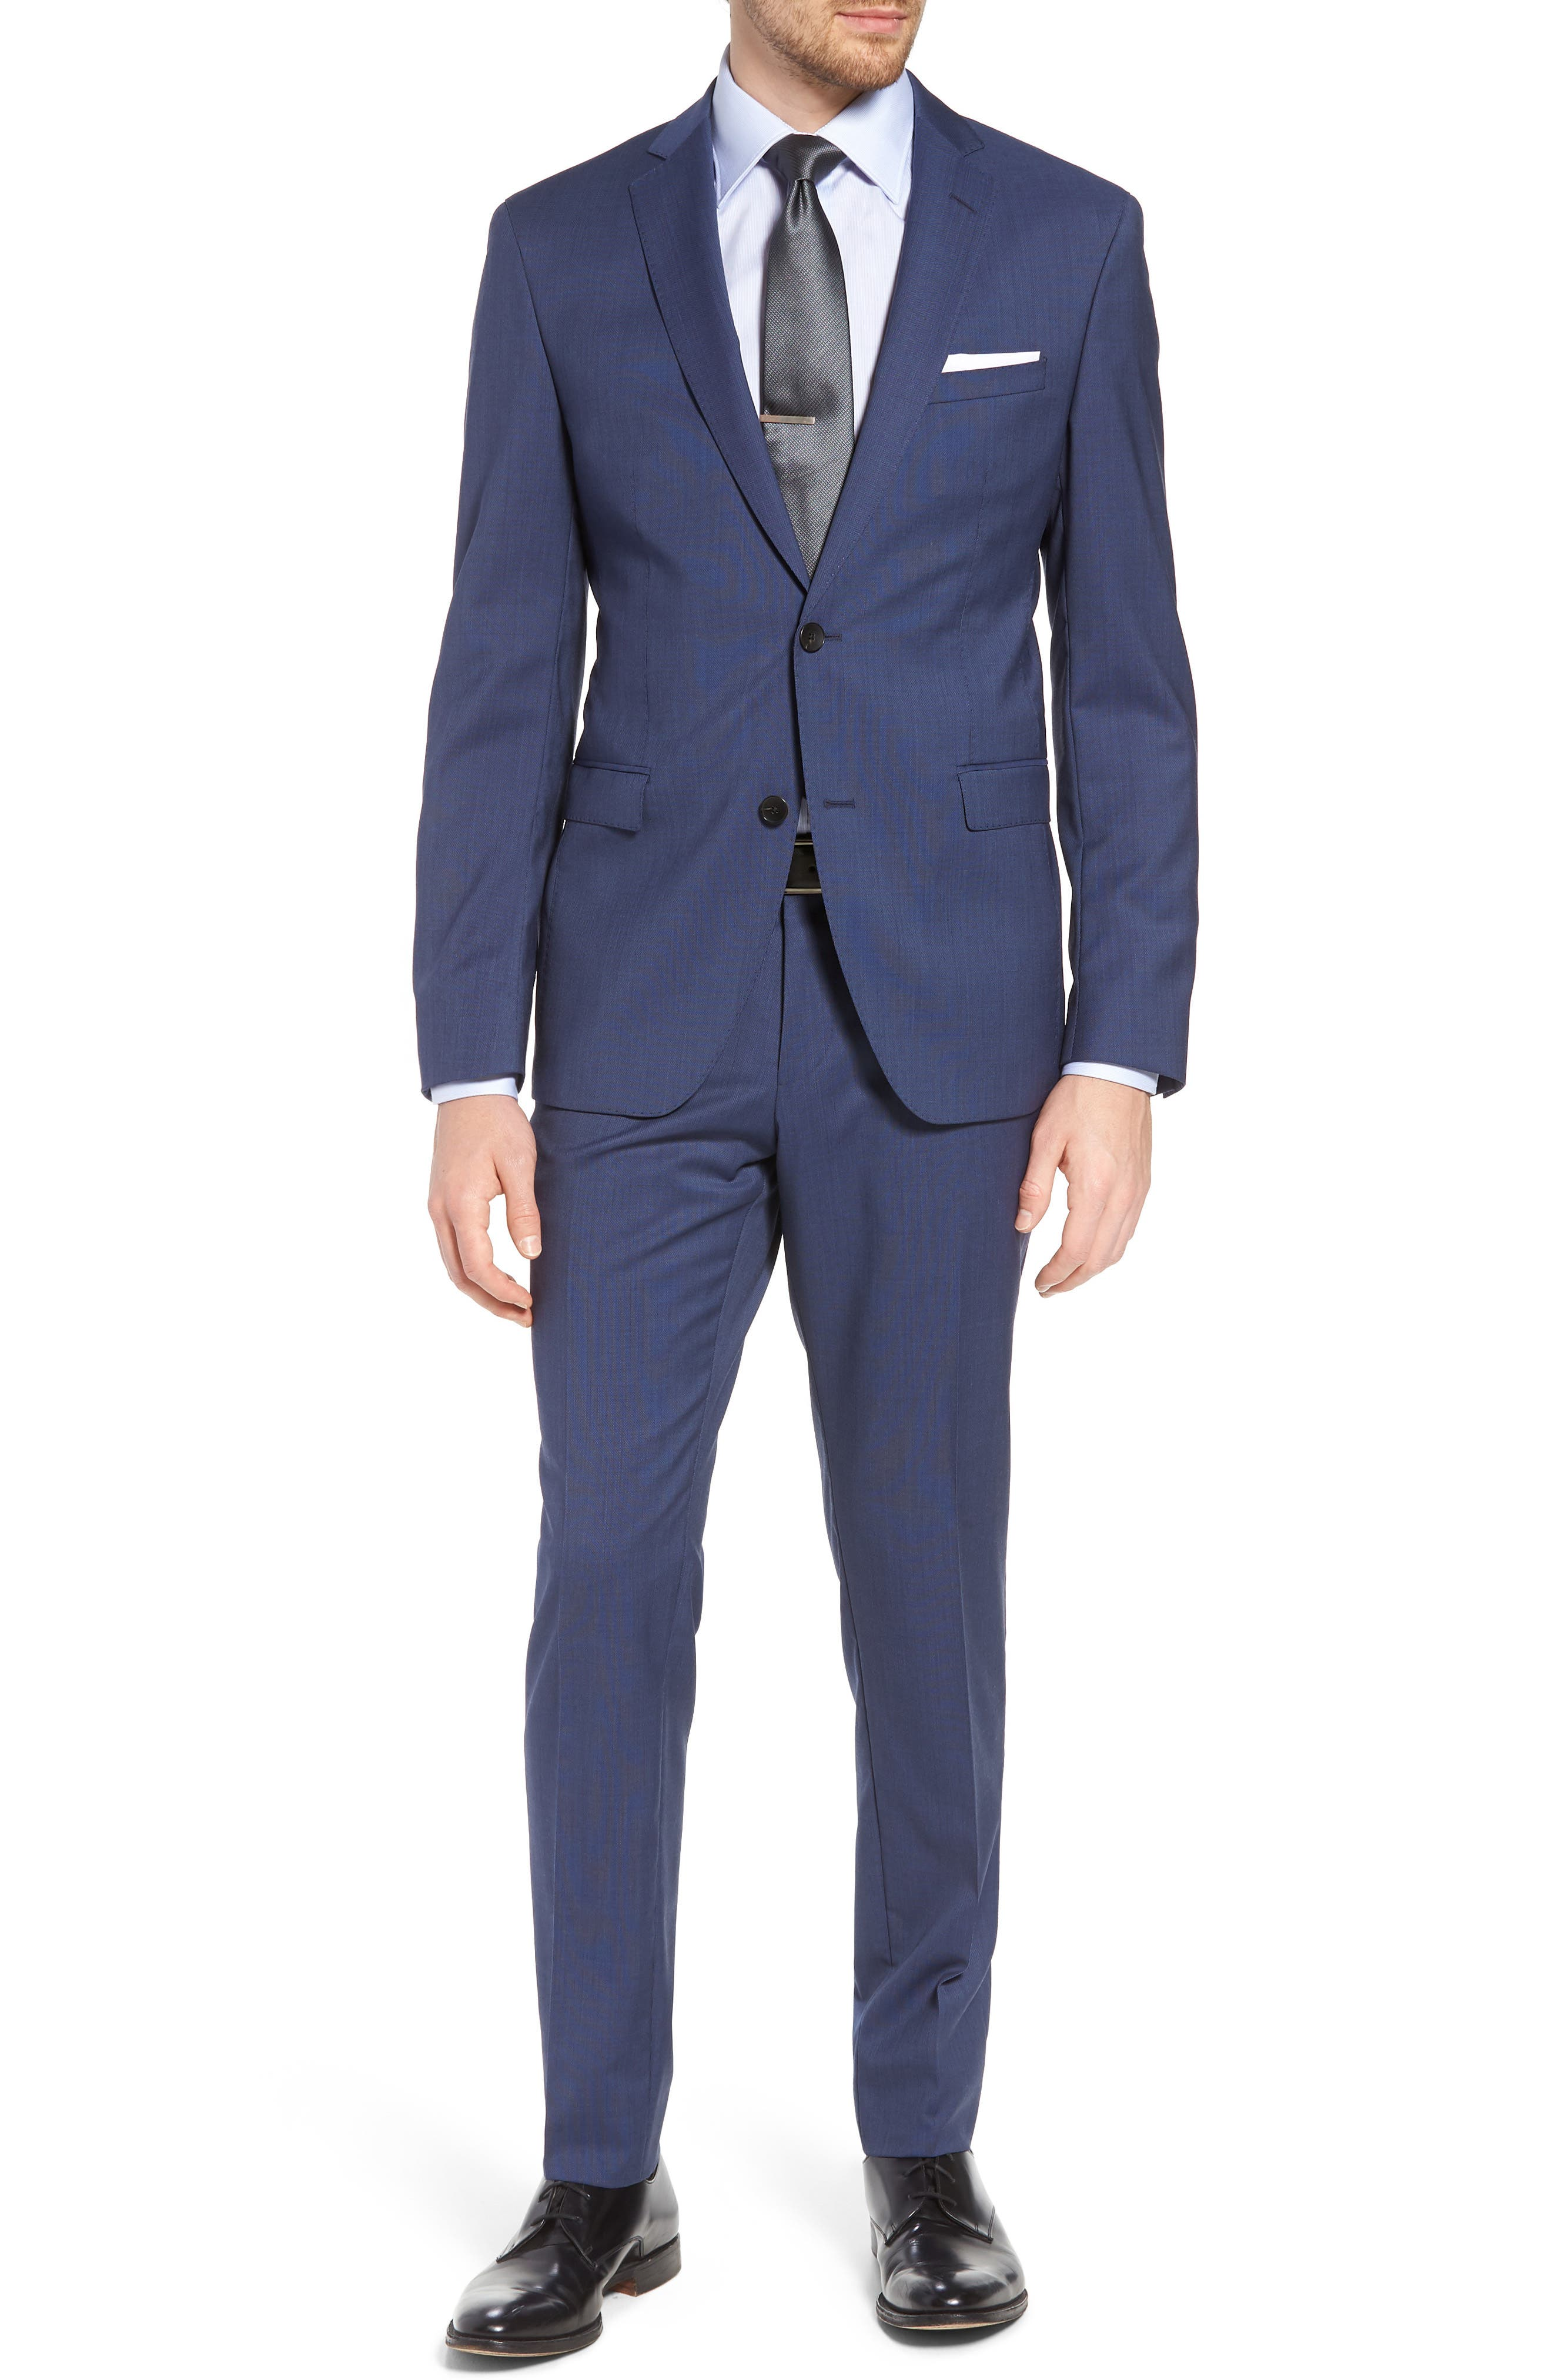 Reyno/Wave Extra Trim Fit Solid Wool Suit,                             Main thumbnail 1, color,                             Medium Blue